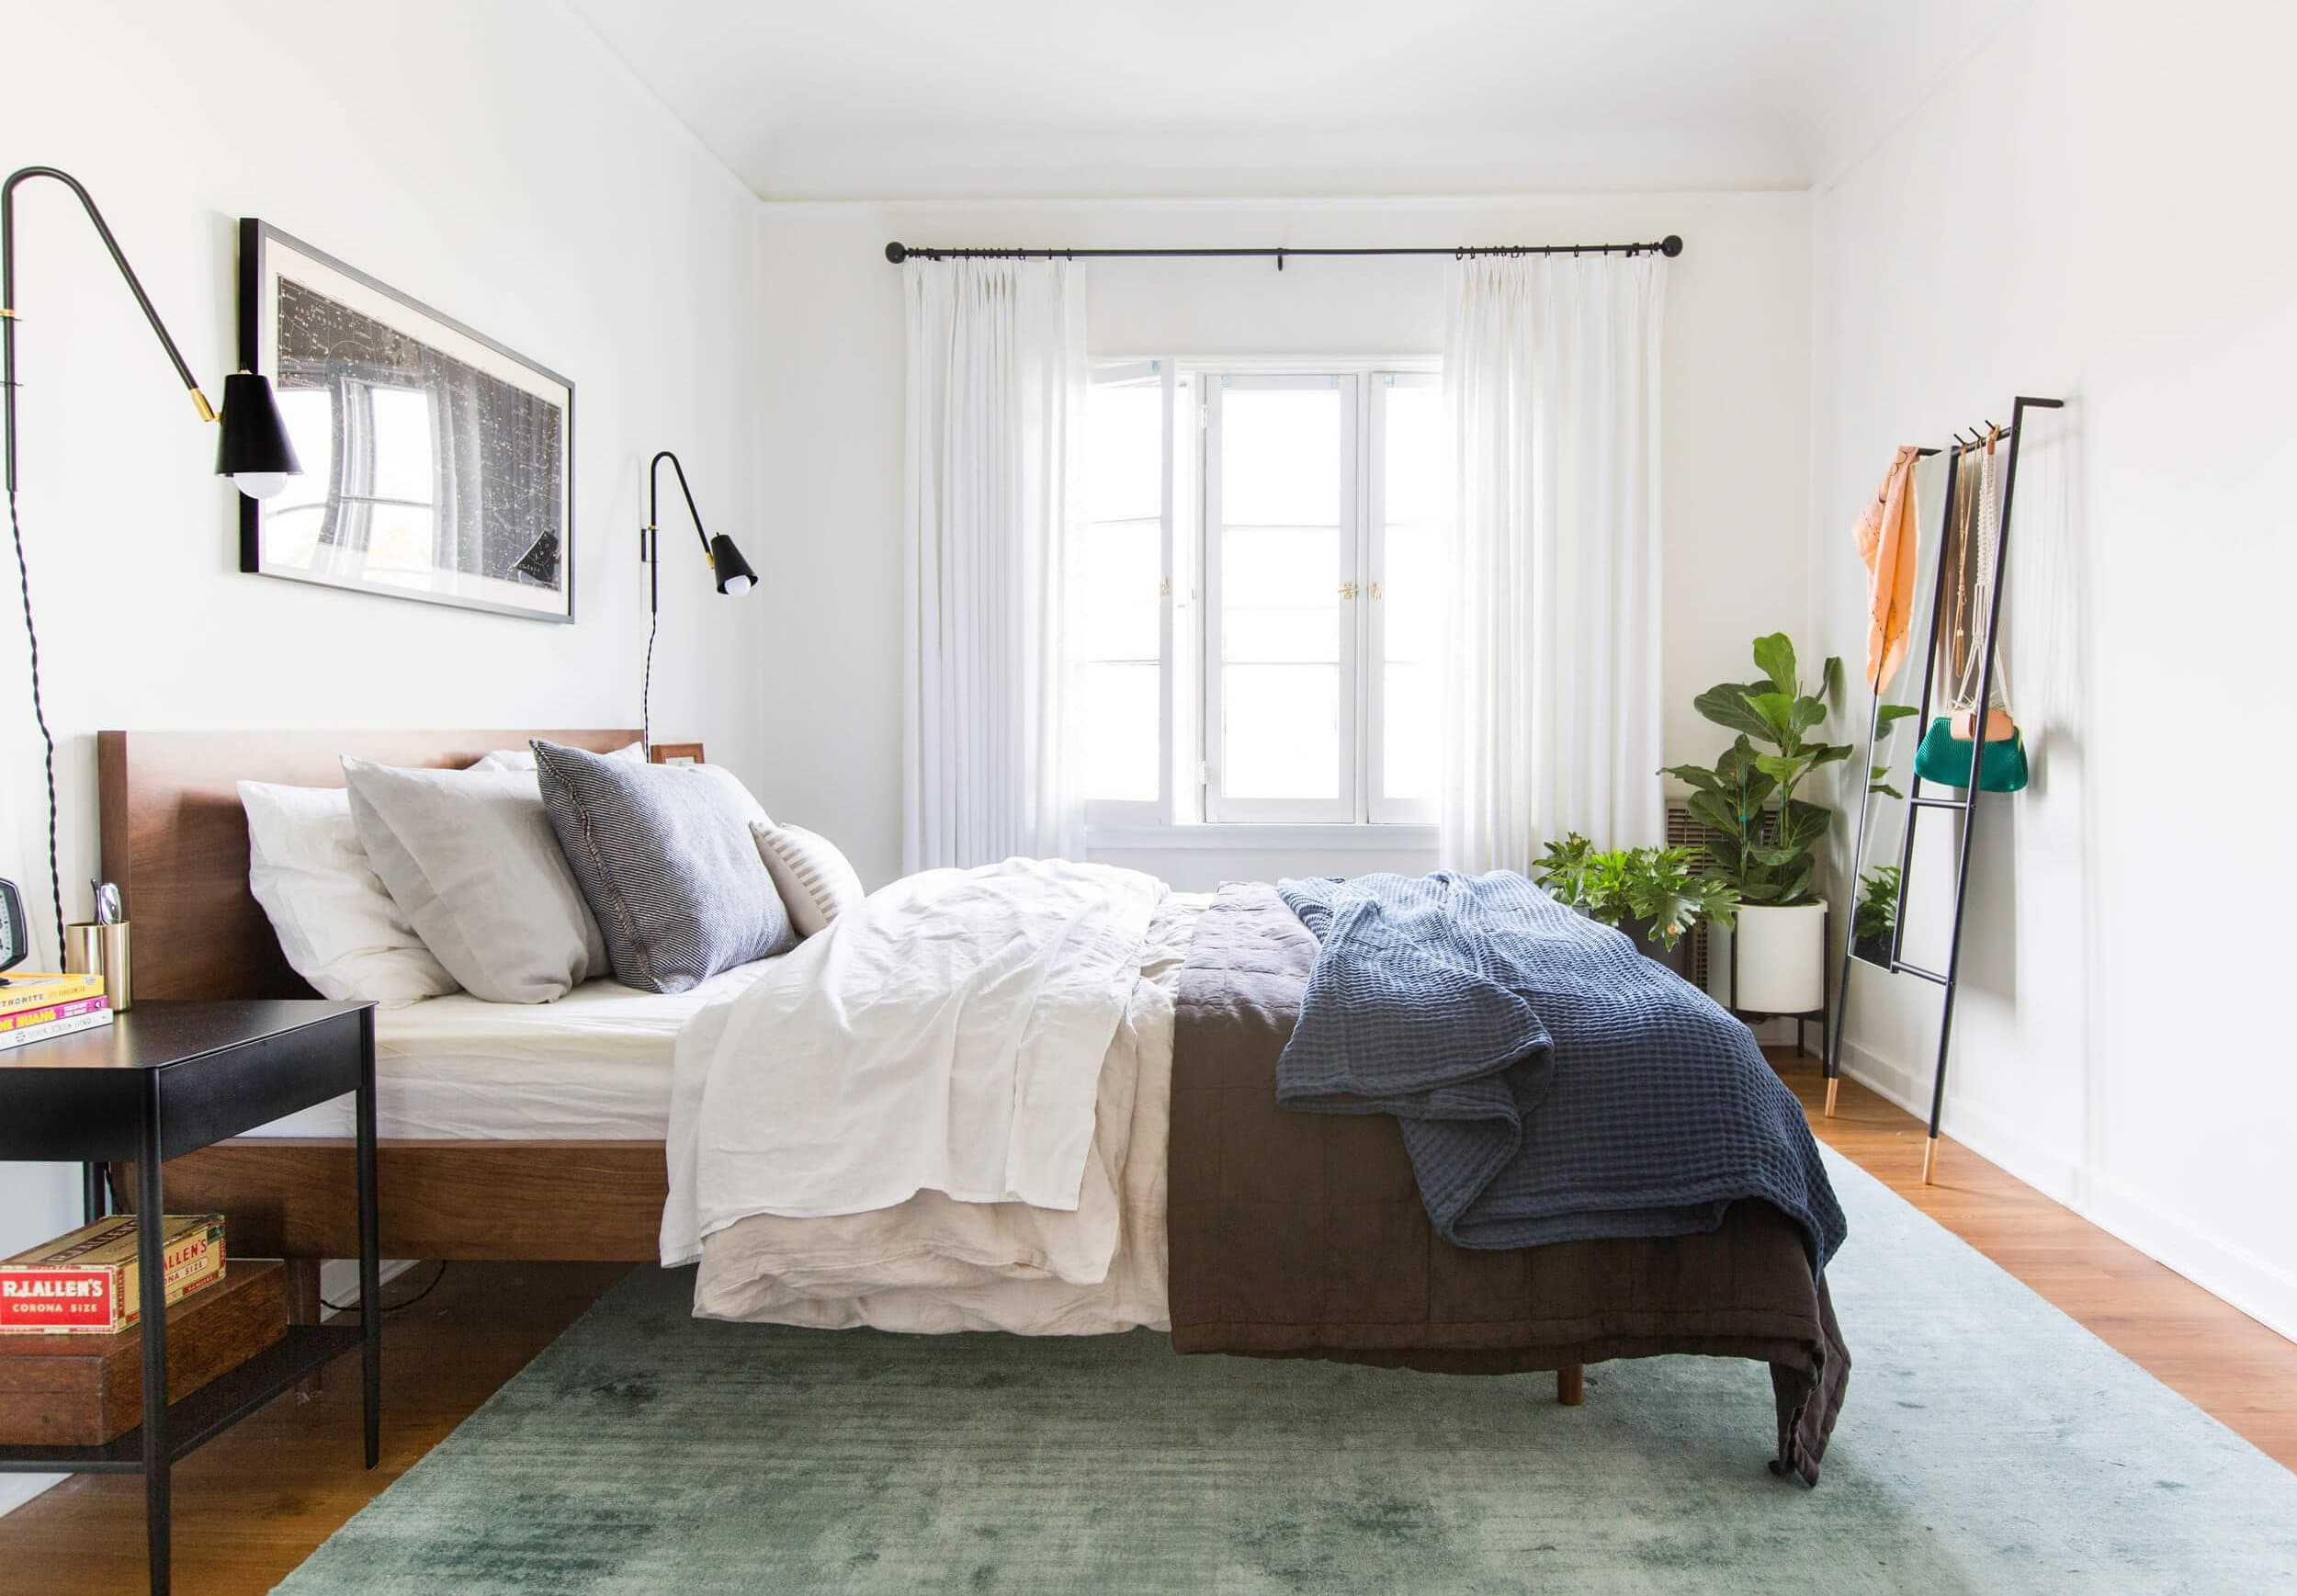 3 Ways To Decorate A Renter Friendly Bedroom On A Budget